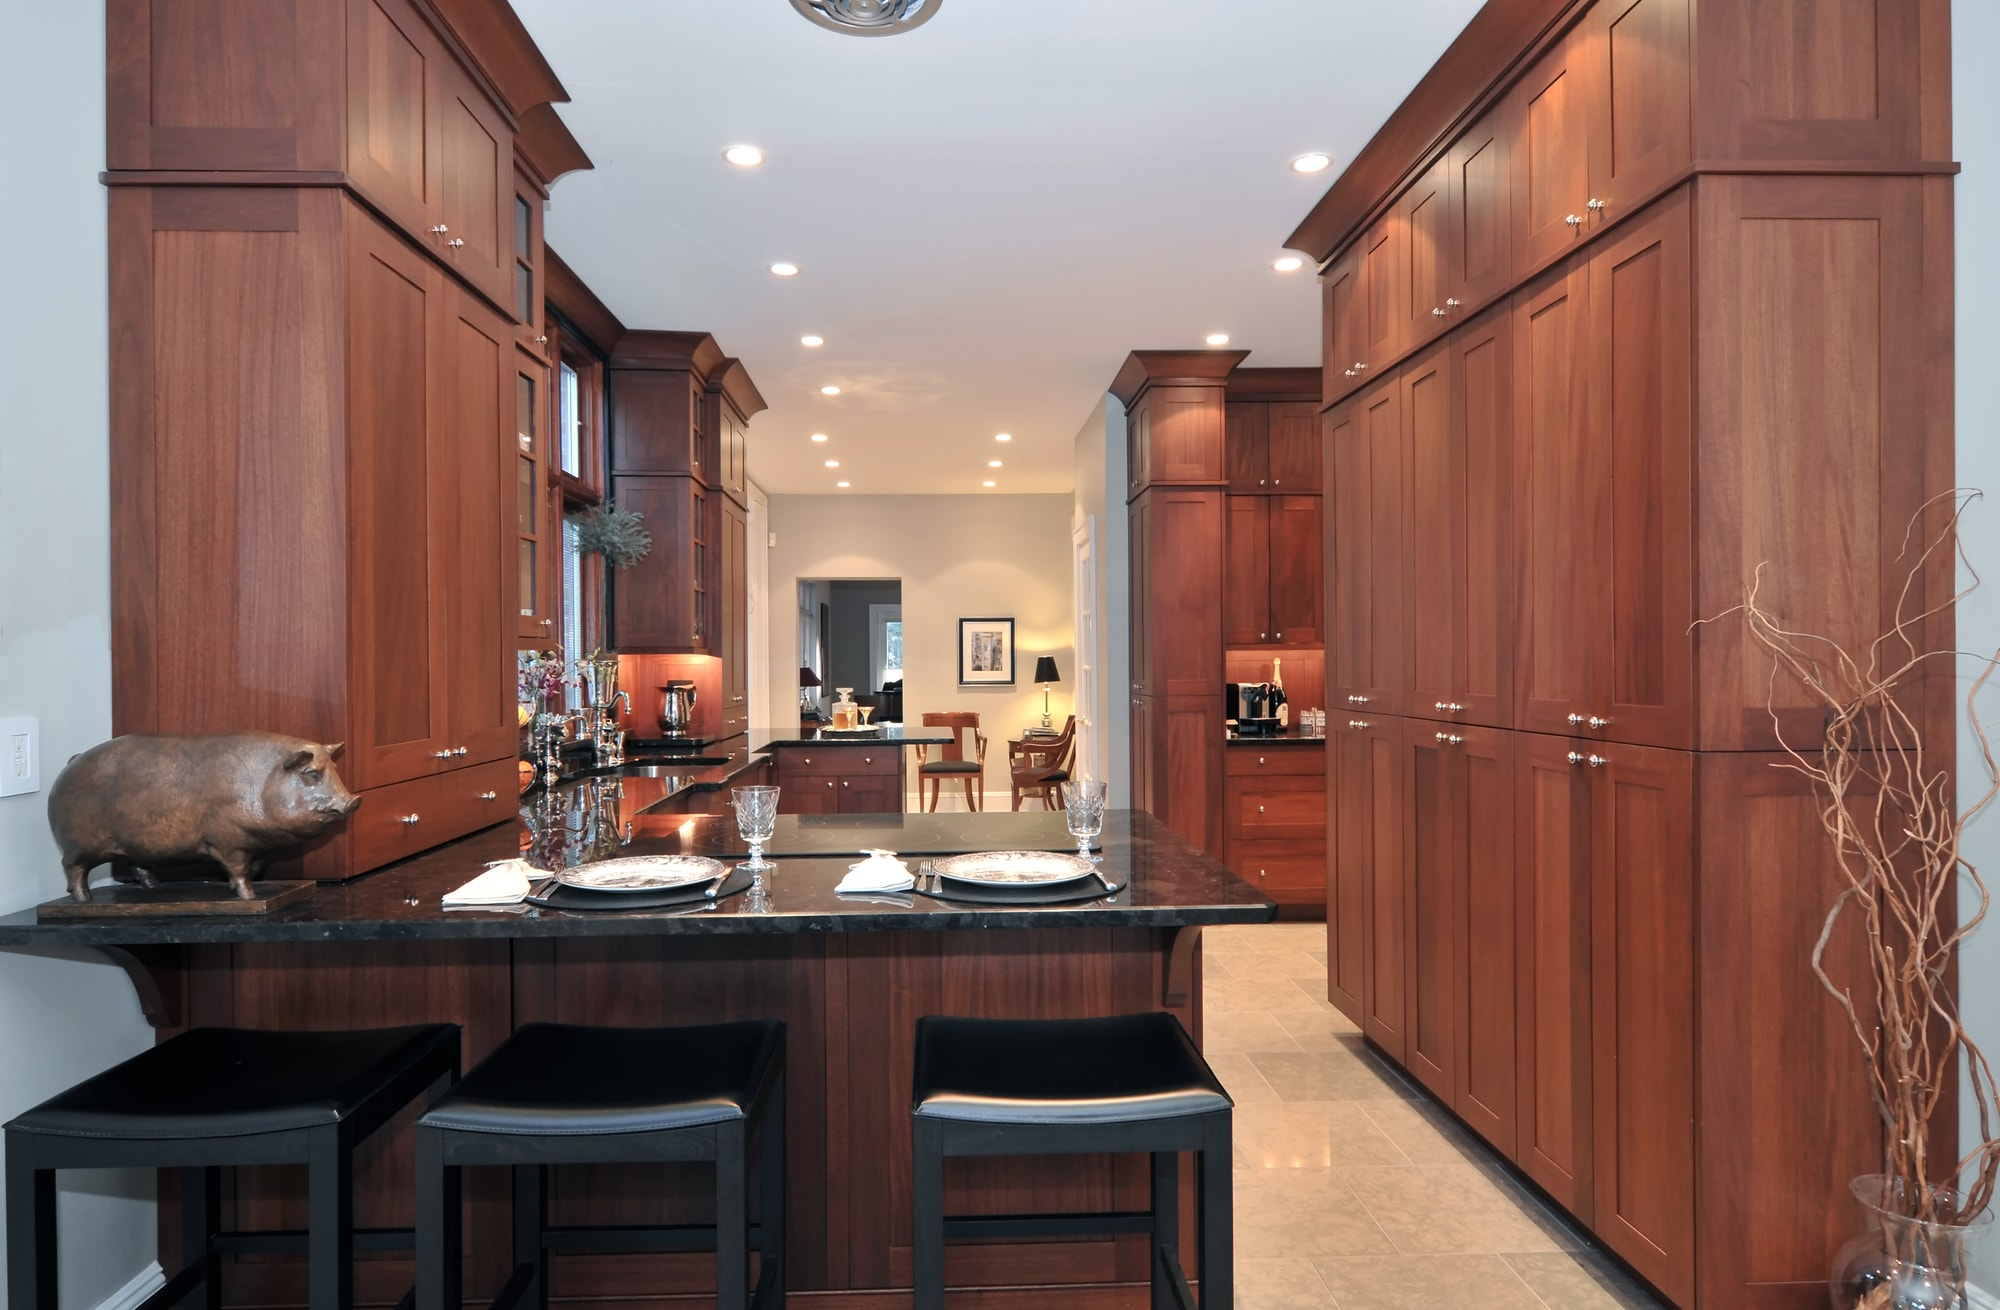 Transitional style kitchen with wooden themed design